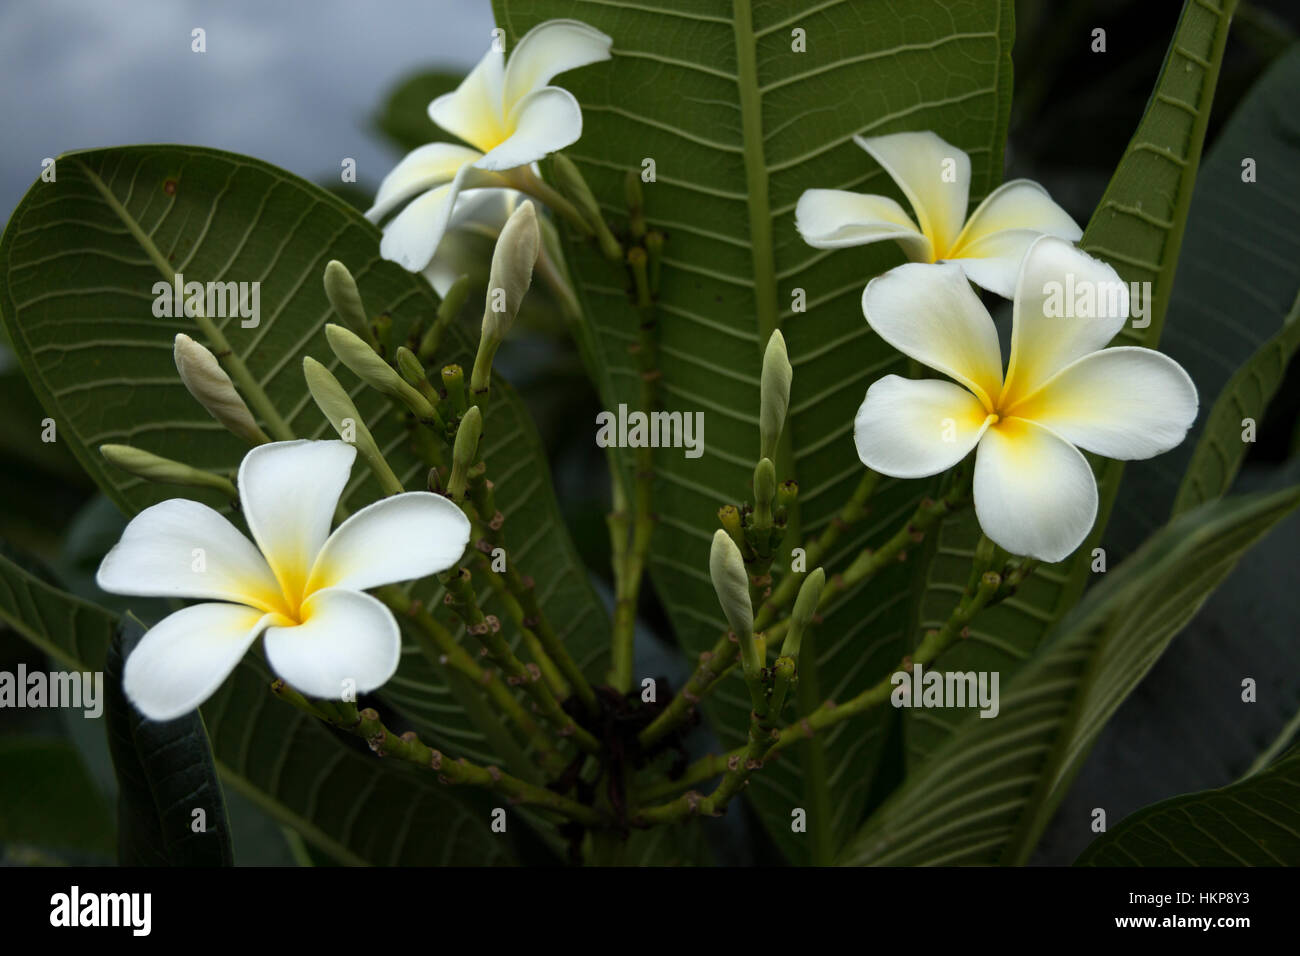 five petal white flowers frangipani ( plumeria ) with yellow center on the green leaf background close up selective - Stock Image